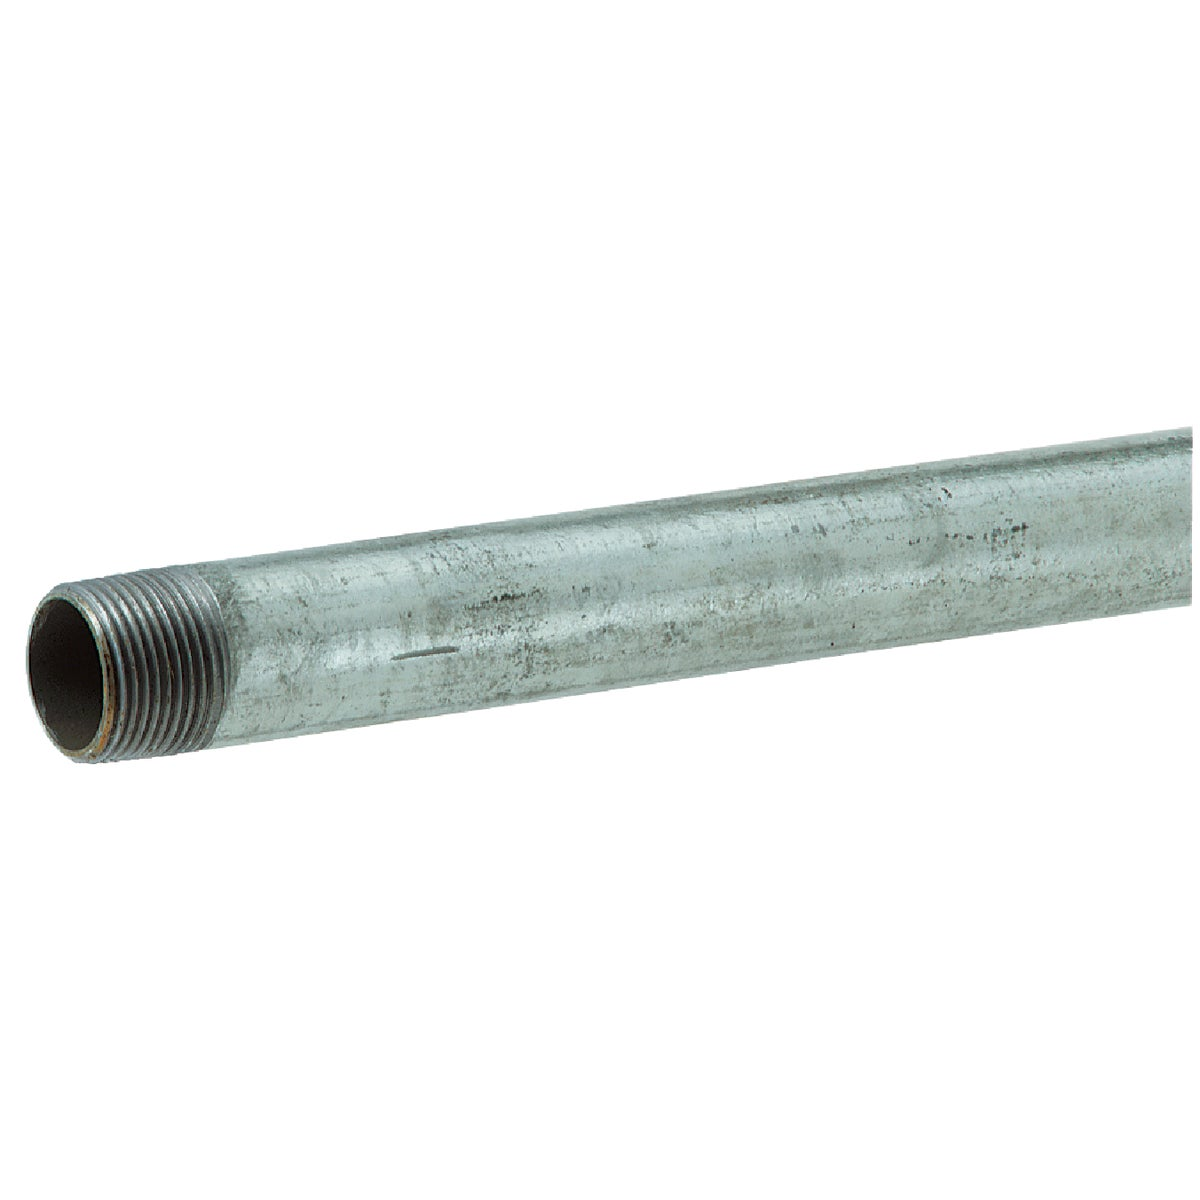 1-1/4X48GALV RDI-CT PIPE - 11/4X48 by Southland Pipe Nippl